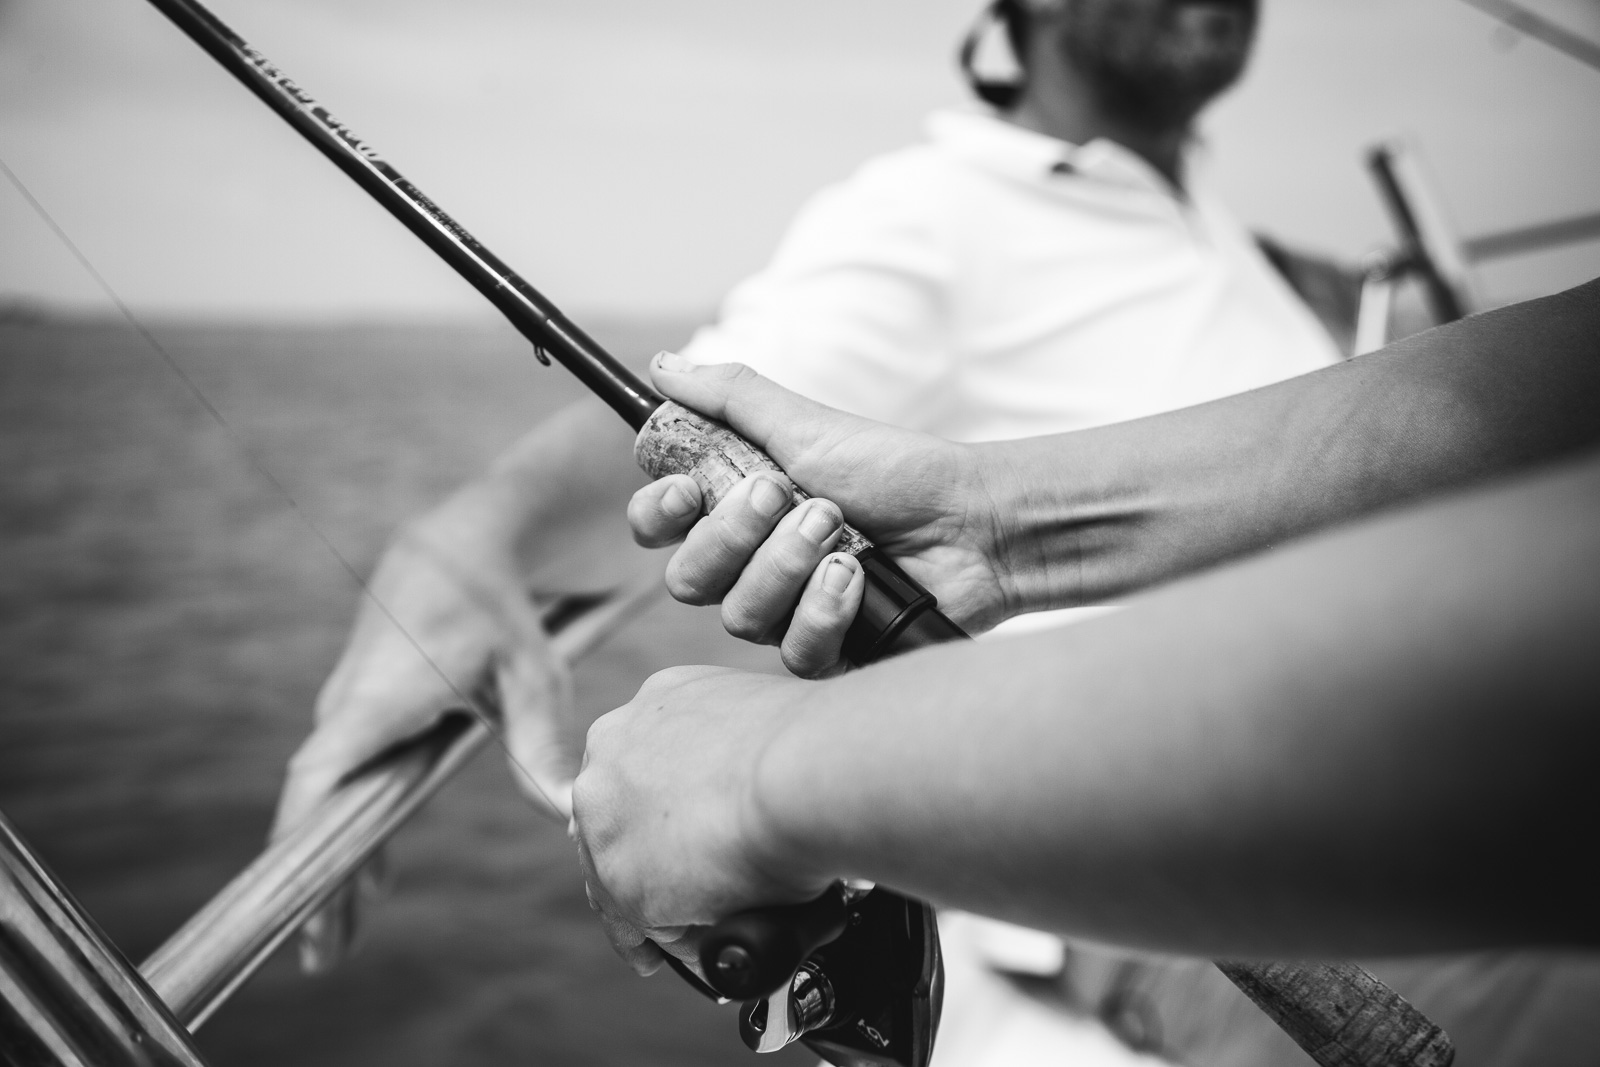 Hands on a fishing rod in a still black and white photo during a video fusion photo session